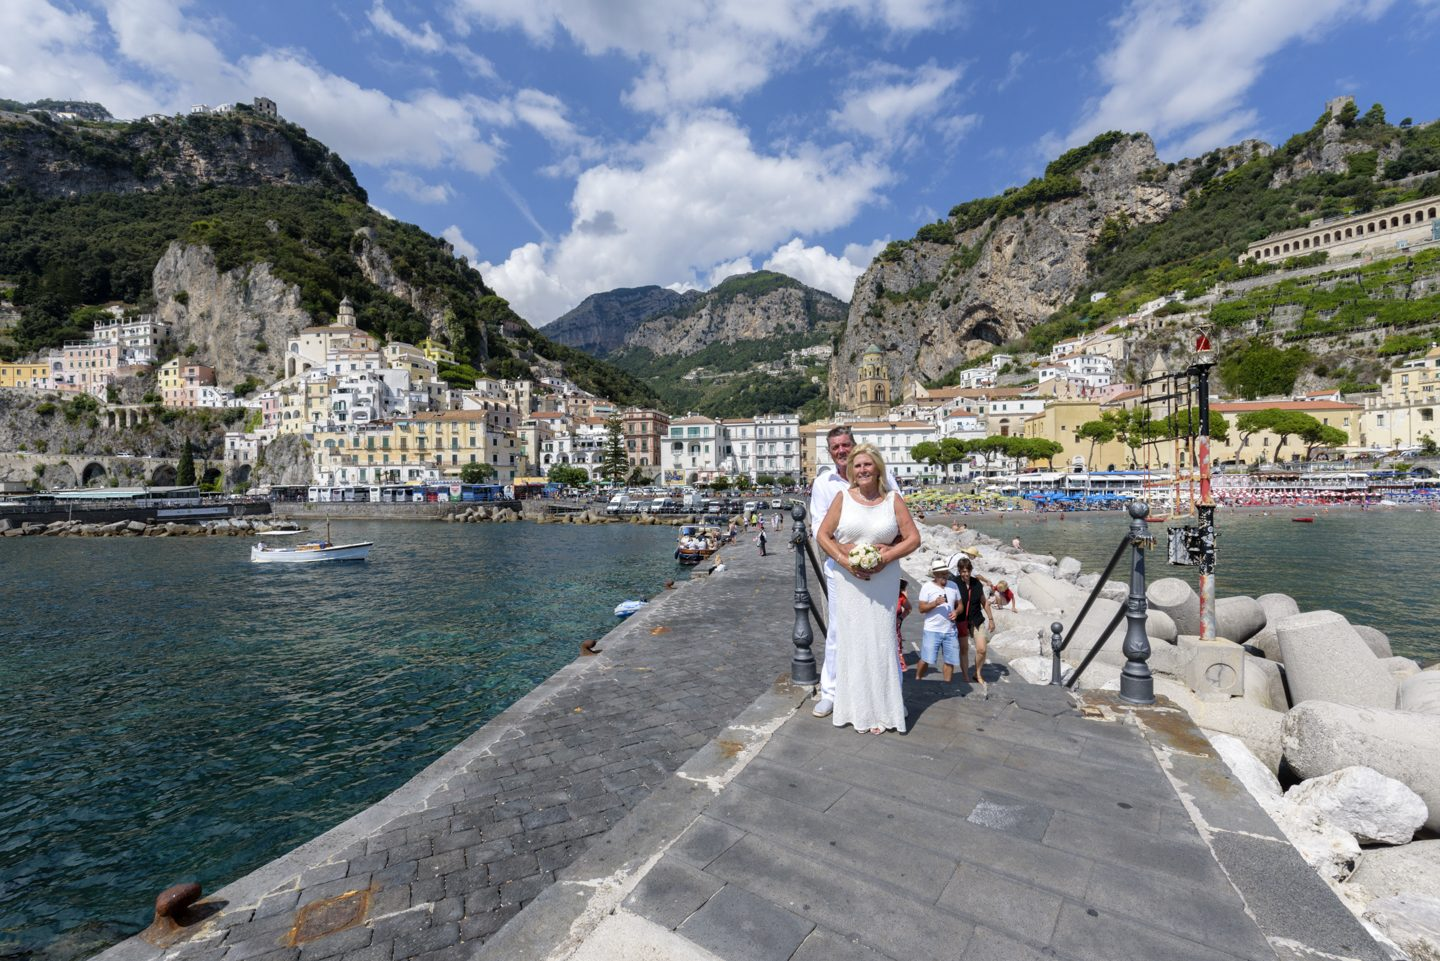 FineArt_Studio_Wedding_In_Amalfi_Paul&Lynne